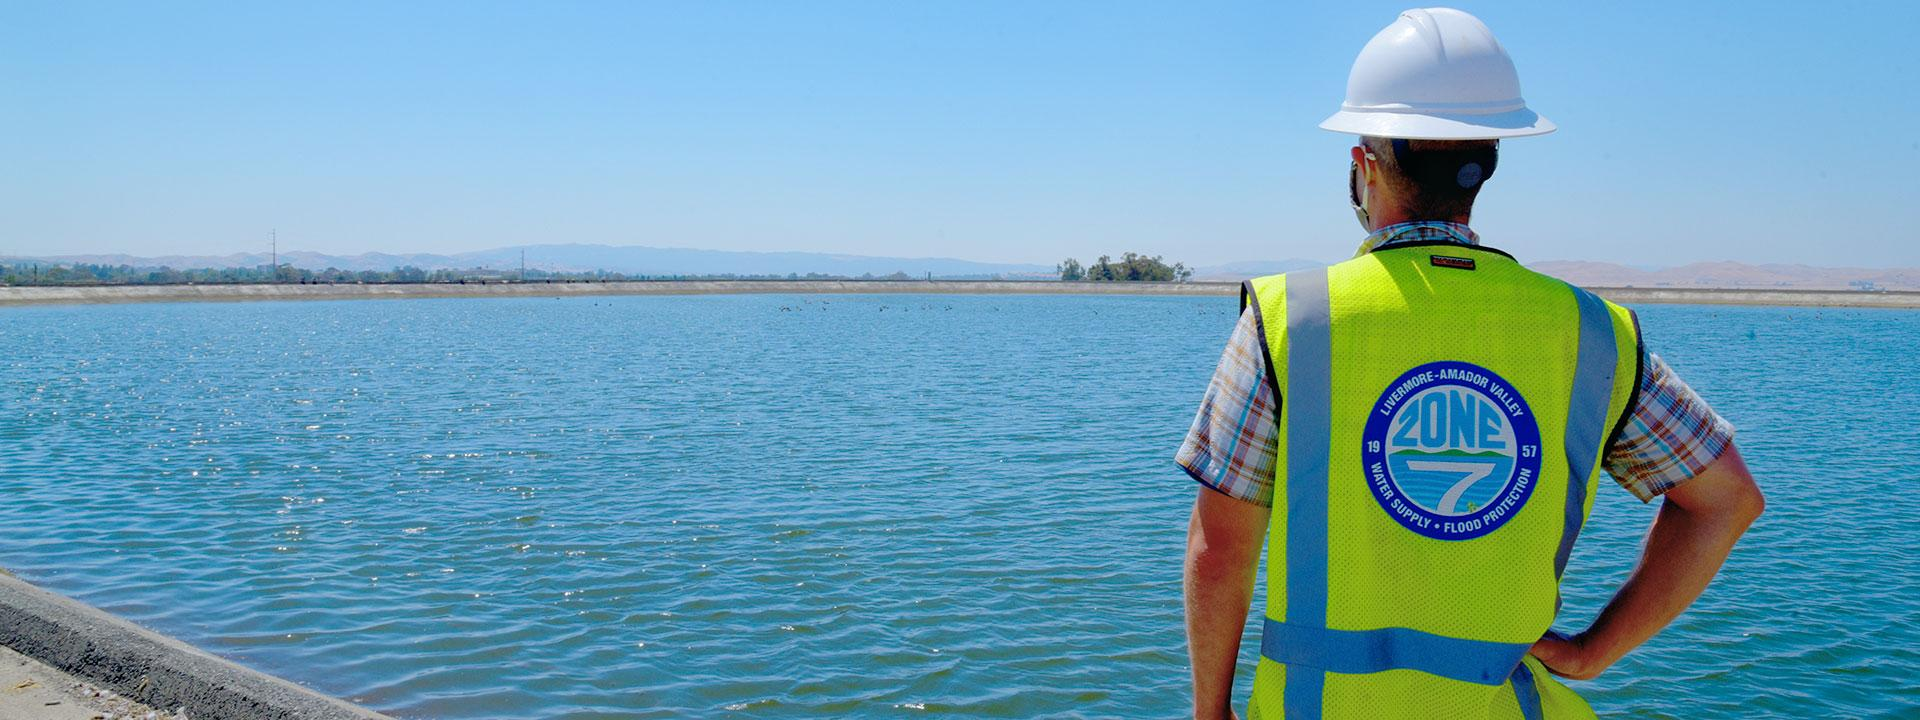 Zone 7 Engineer wearing a white hard hat and a yellow hazard vest looking out to a body of water